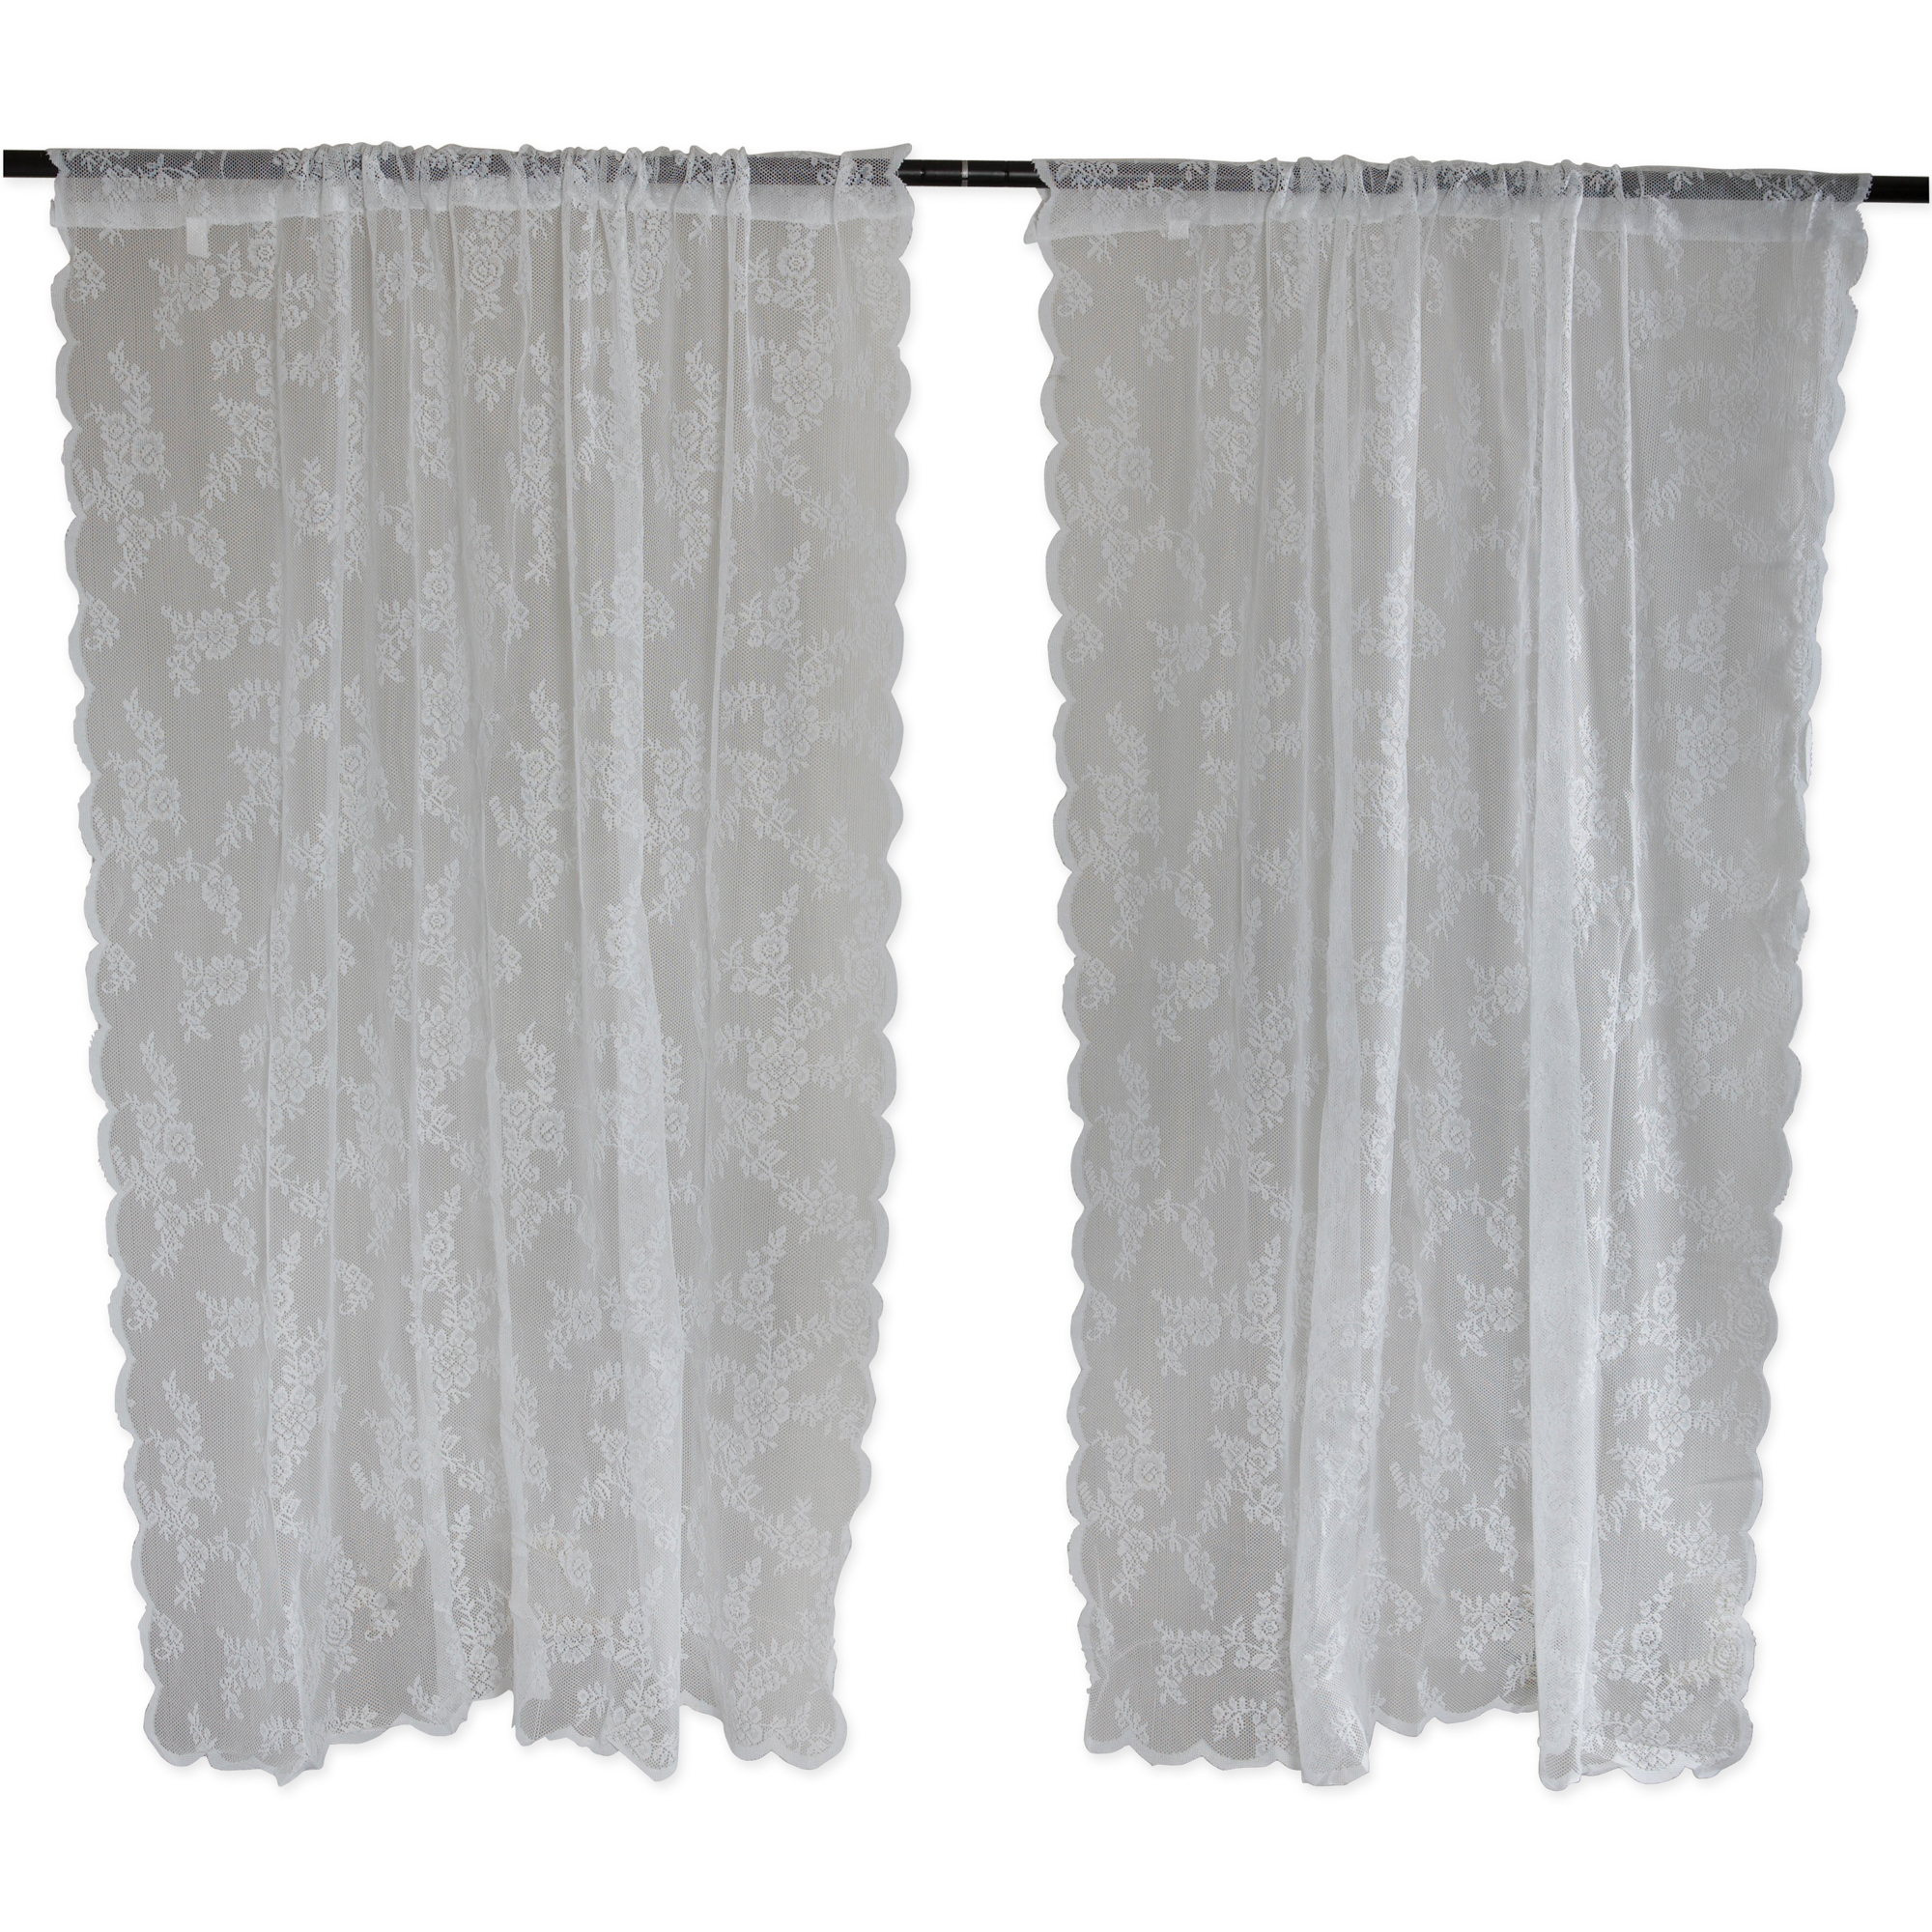 White Flower Blossom Lace Window Curtain 50x63 Set/2